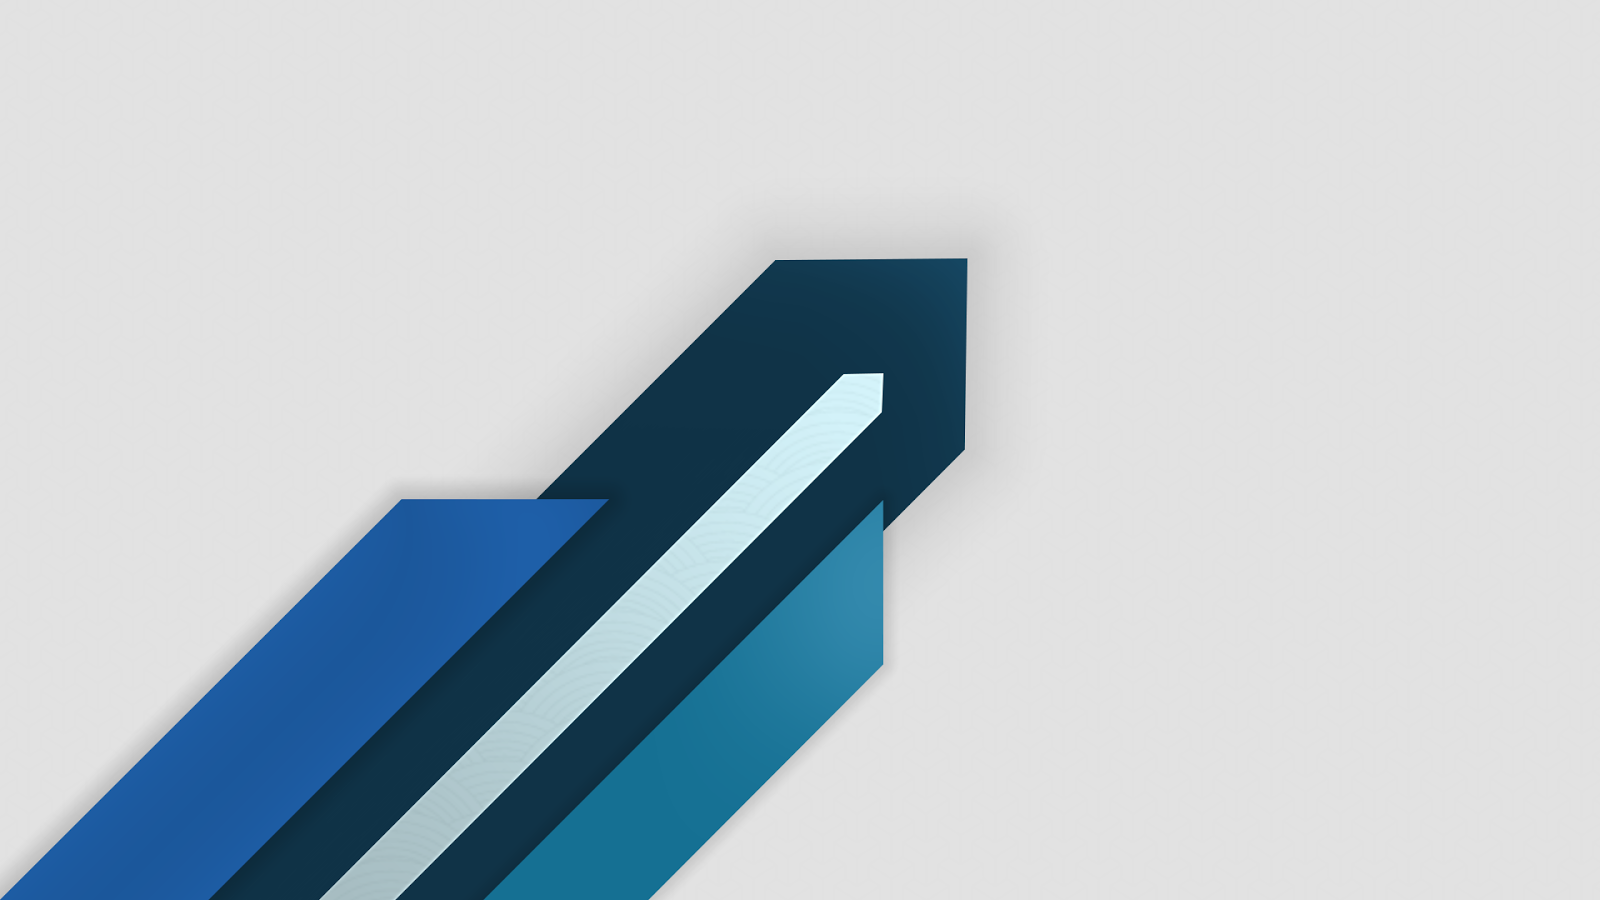 Download 11 wallpapers with material design like style kickedface